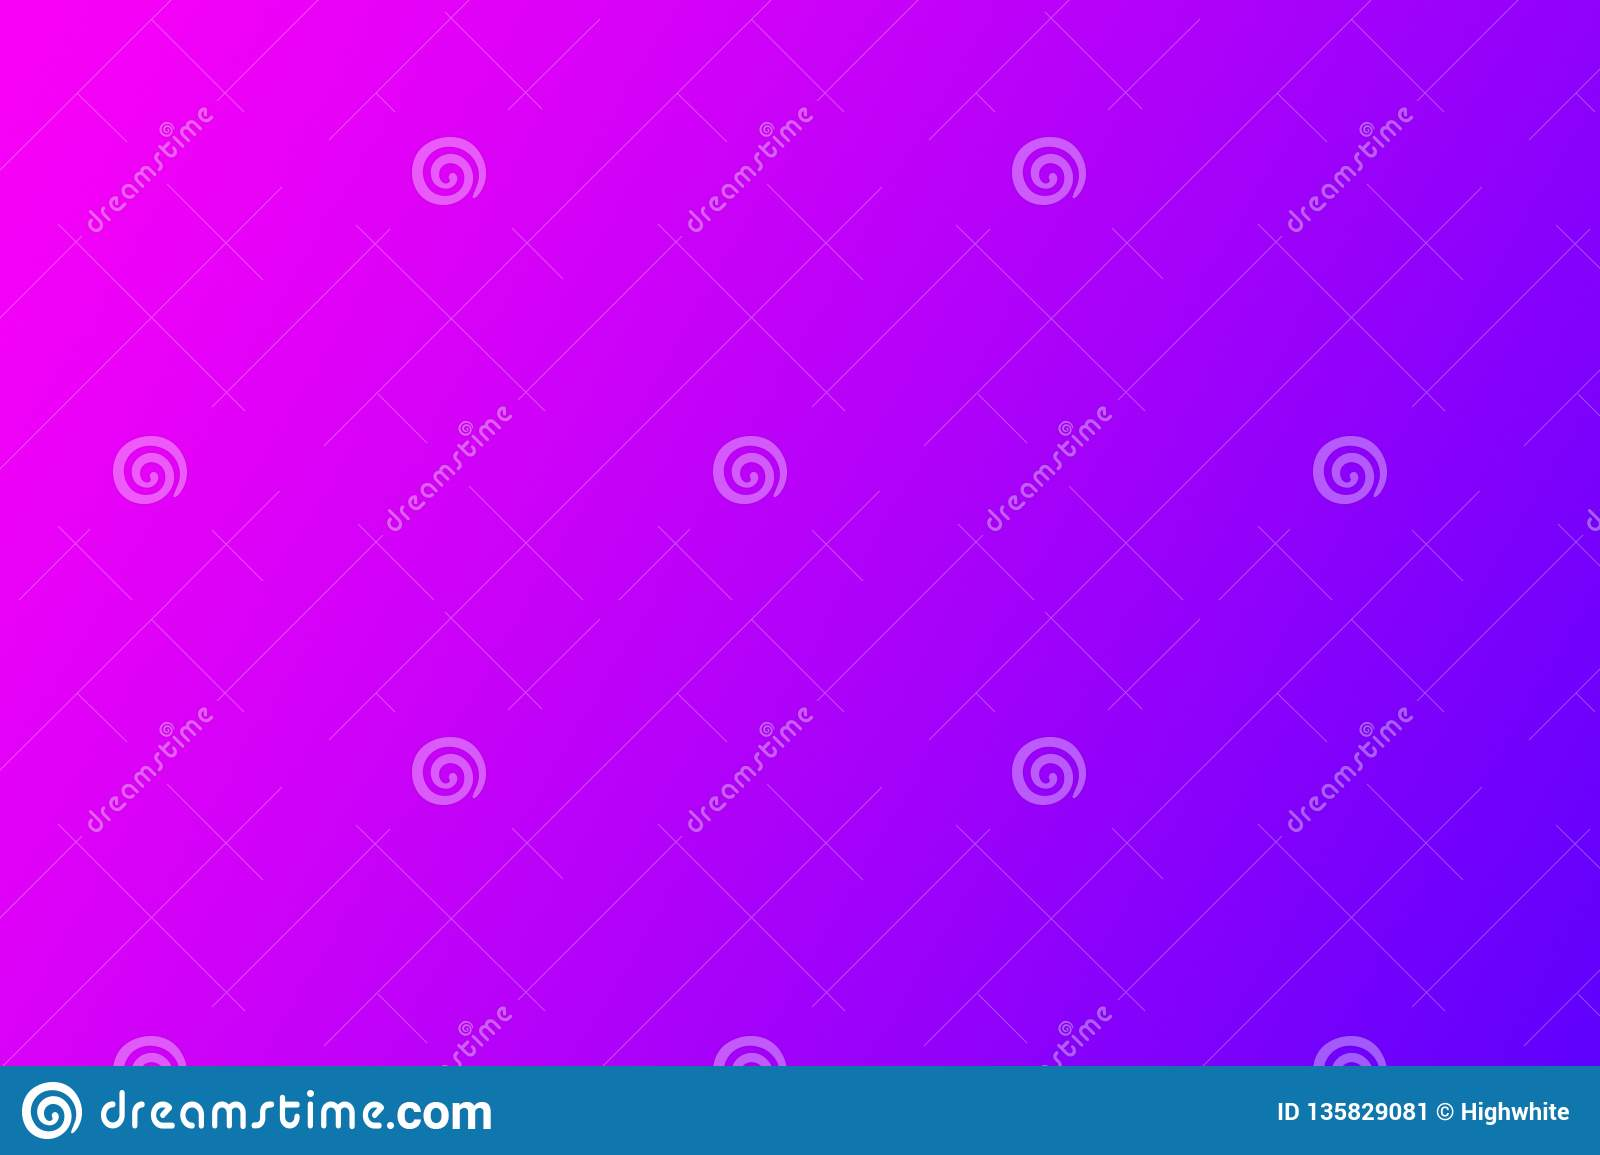 Beautiful abstract neon glow, neon backgrounds. pink lilac blue gradient.